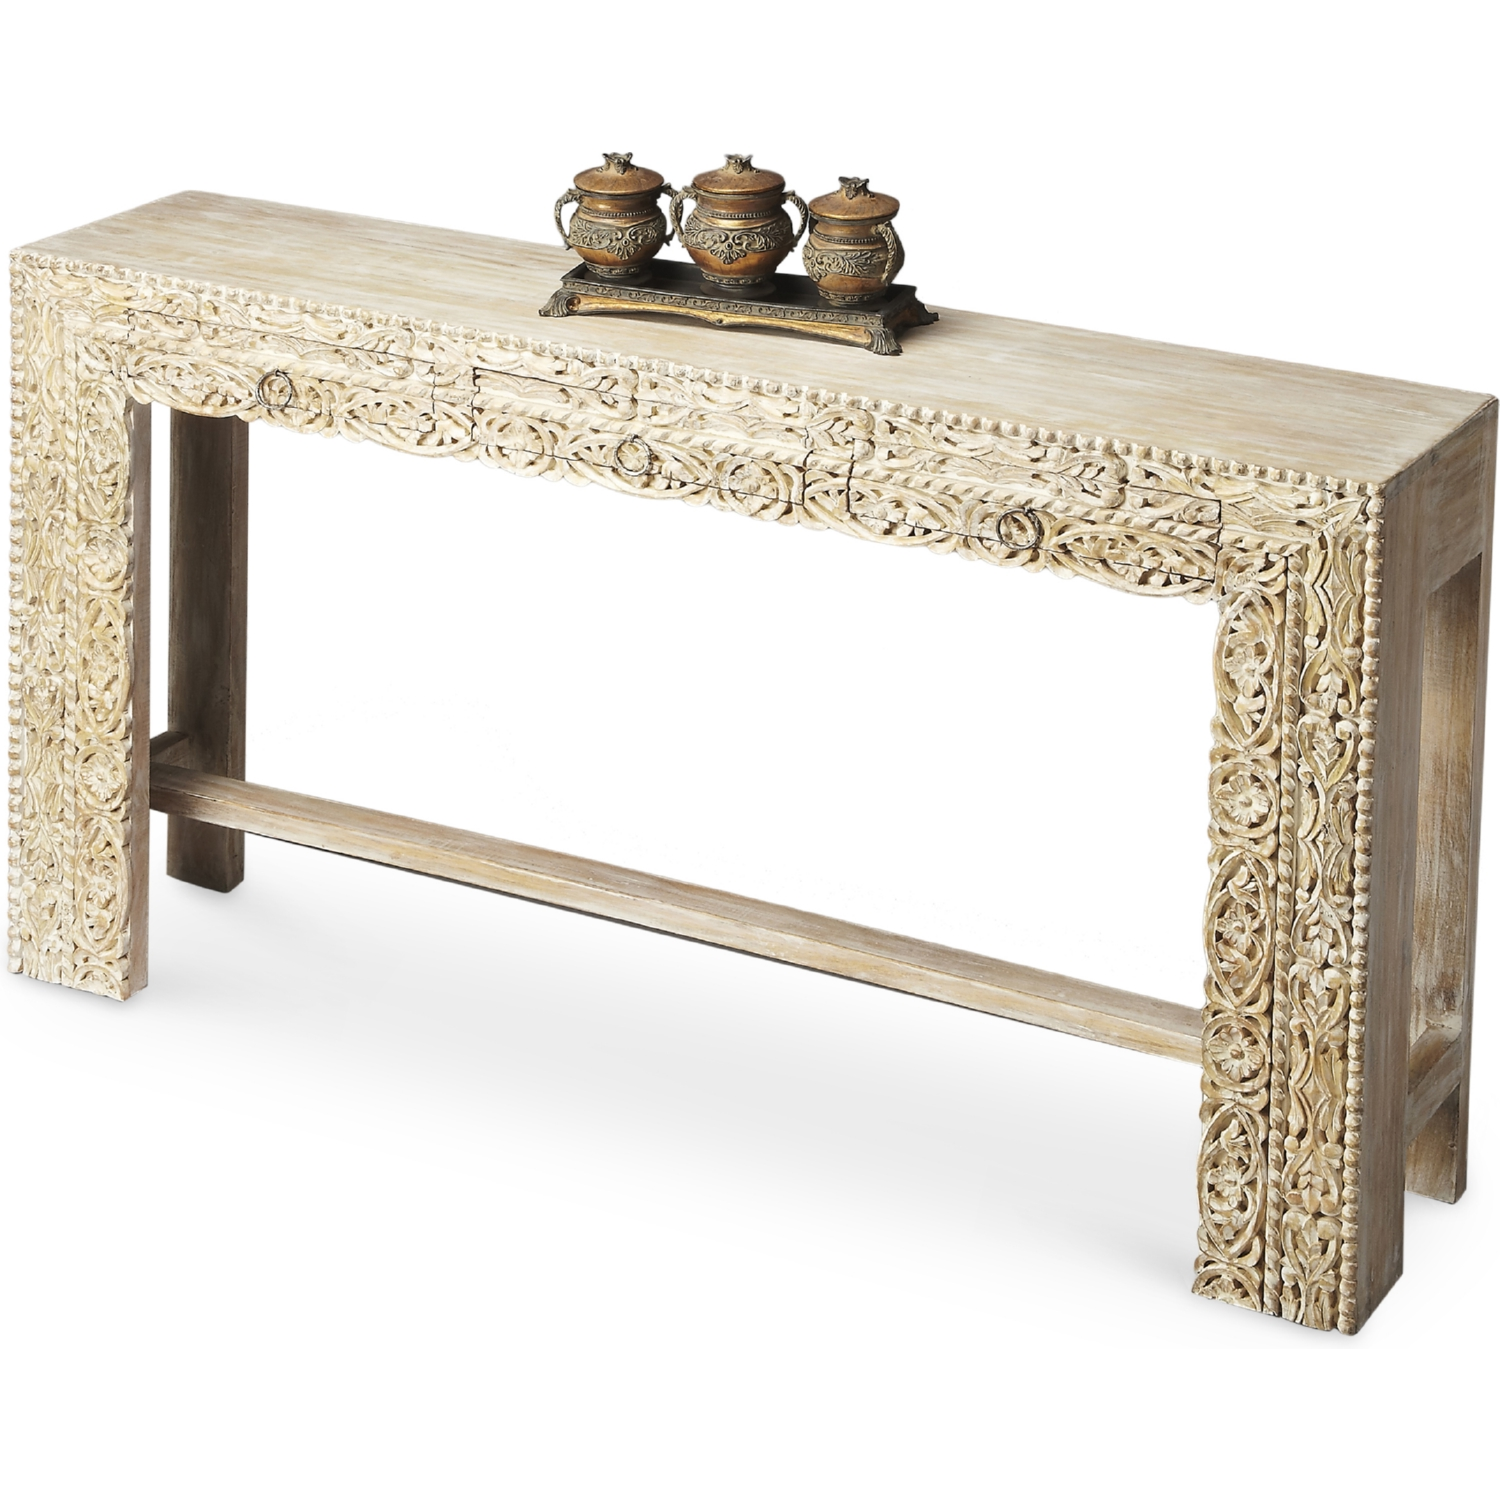 Butler Specialty 2069290 Artifacts Console Table White Recycled Mango Wood Wood Console Wood Console Table Console Table